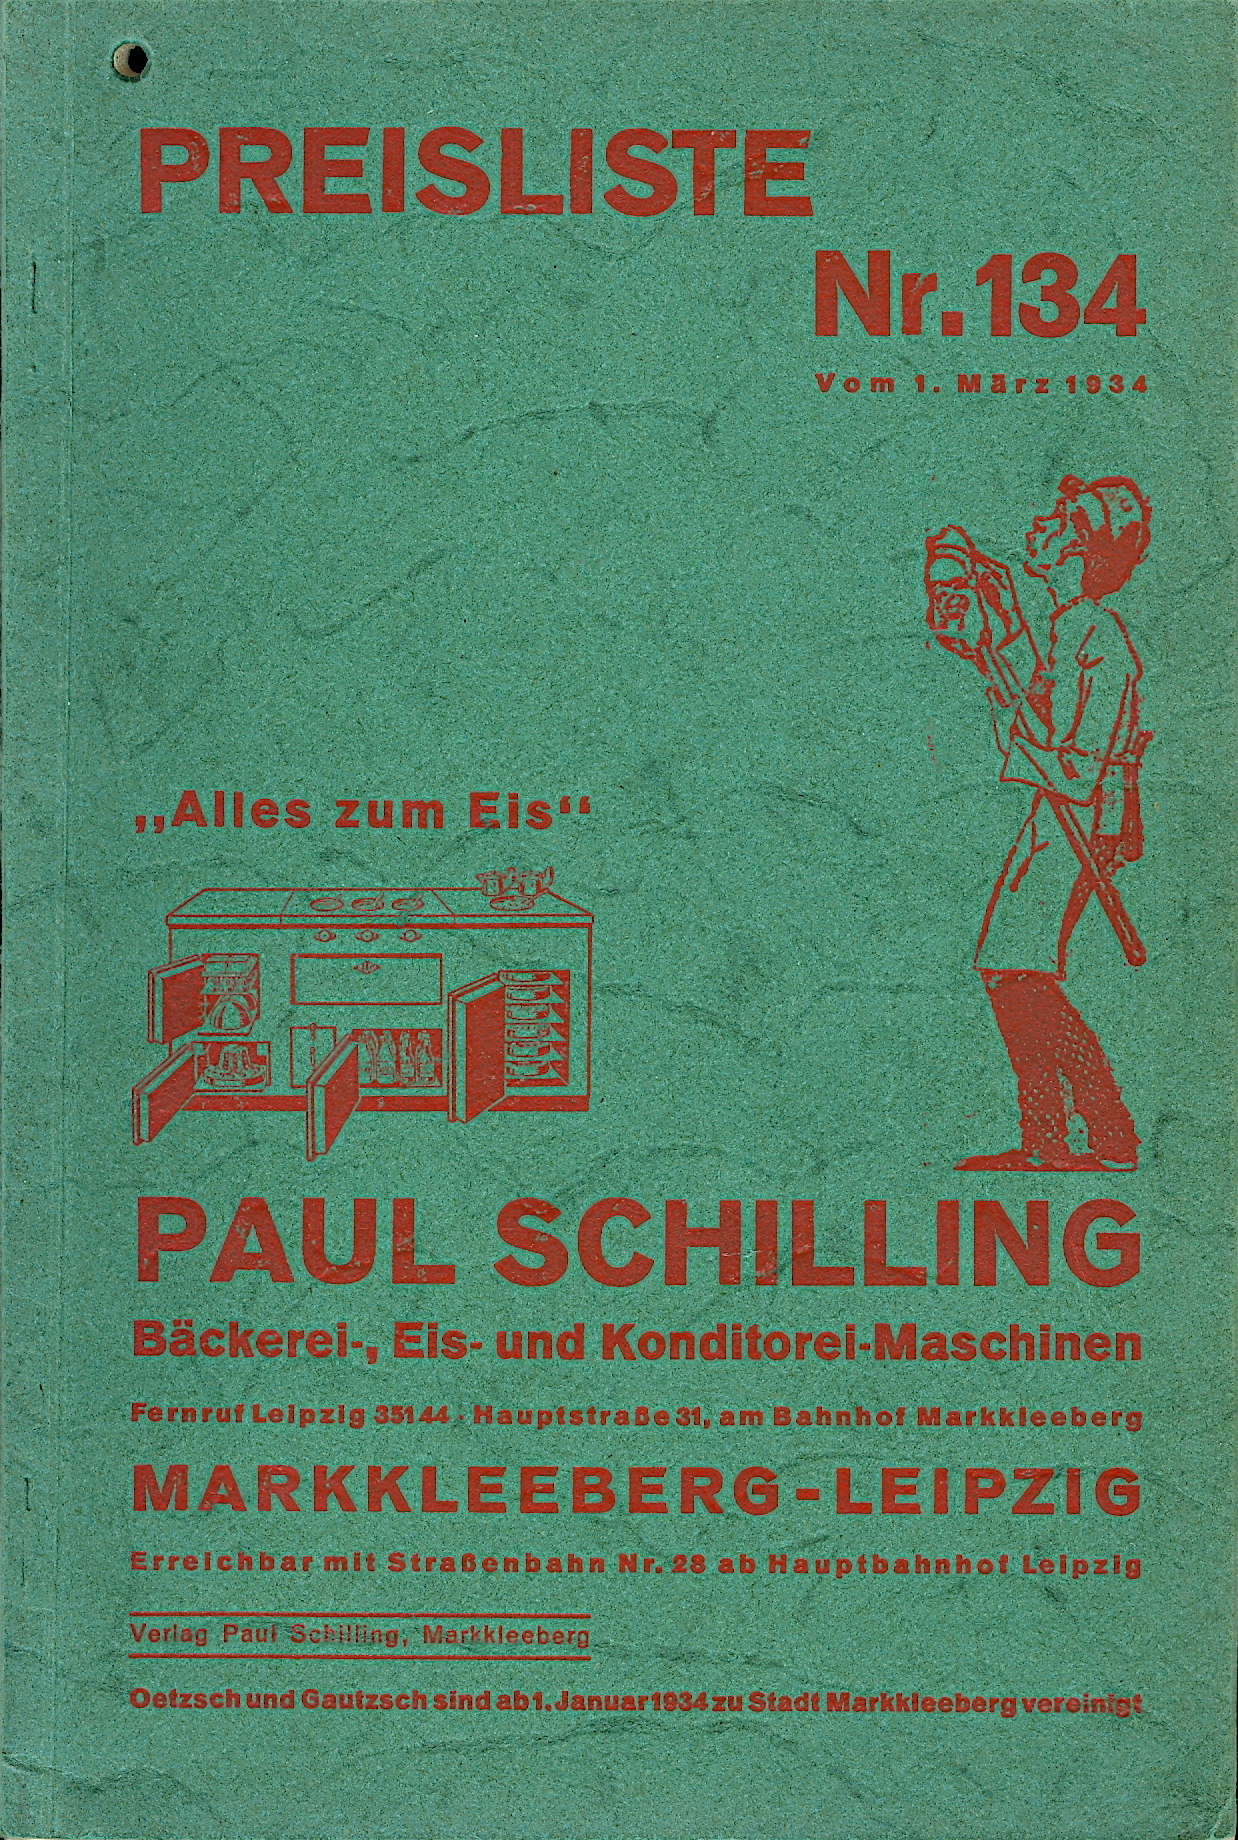 Paul Schilling, Bäckerei-, Eis-und Konditorei-Maschinen, Preisliste Nr. 134 [Paul Schilling, Bakery, Ice-cream and Confectionery Machines, Pricelist no. 134]. Trade Catalogue – Bakery & Ice Cream Equipment, Paul Schilling.